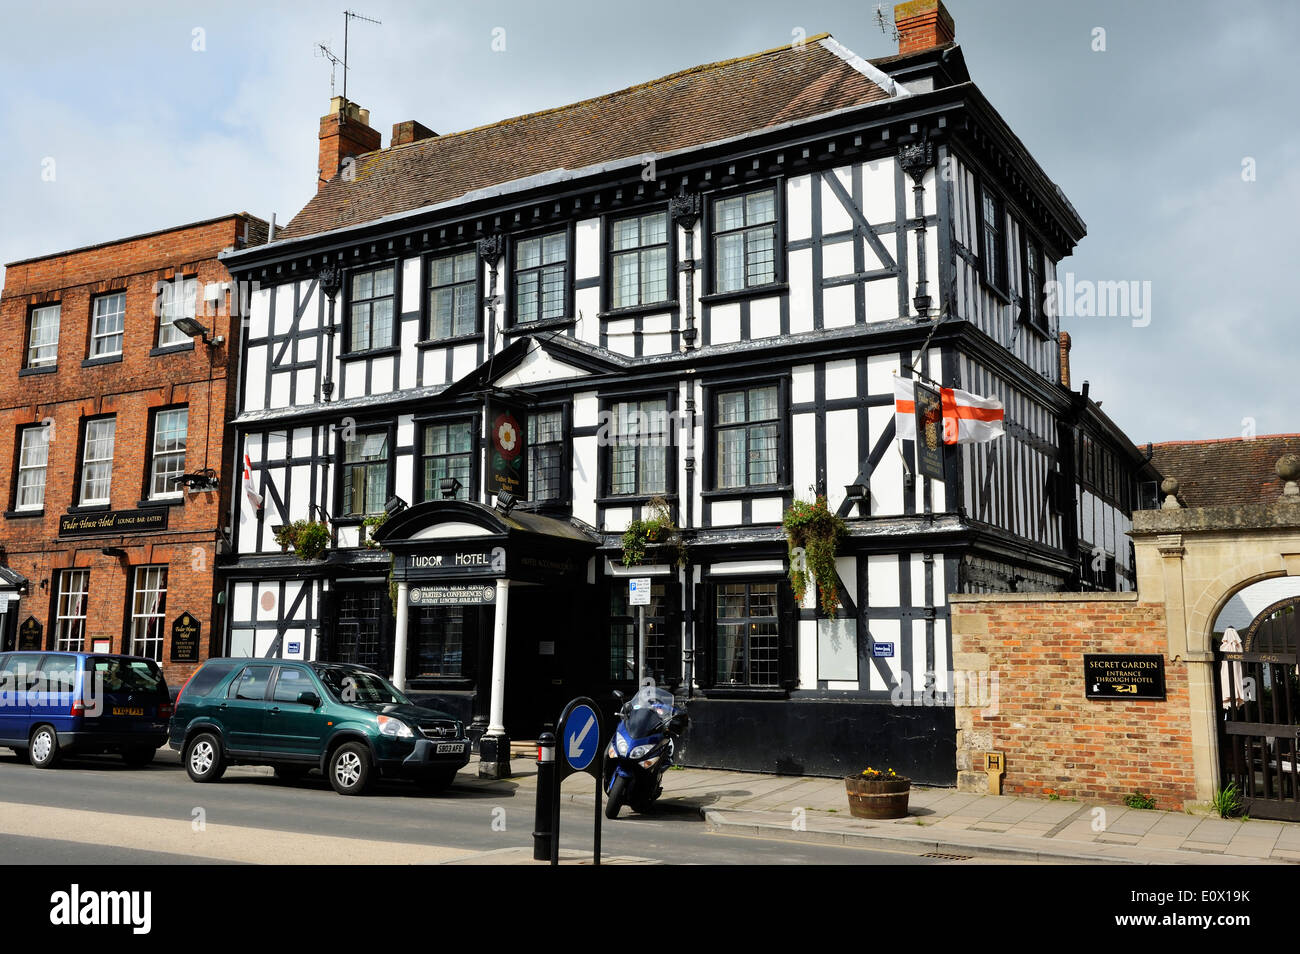 The Tudor House Hotel on the High Street in Tewkesbury, Gloucestershire, England - Stock Image